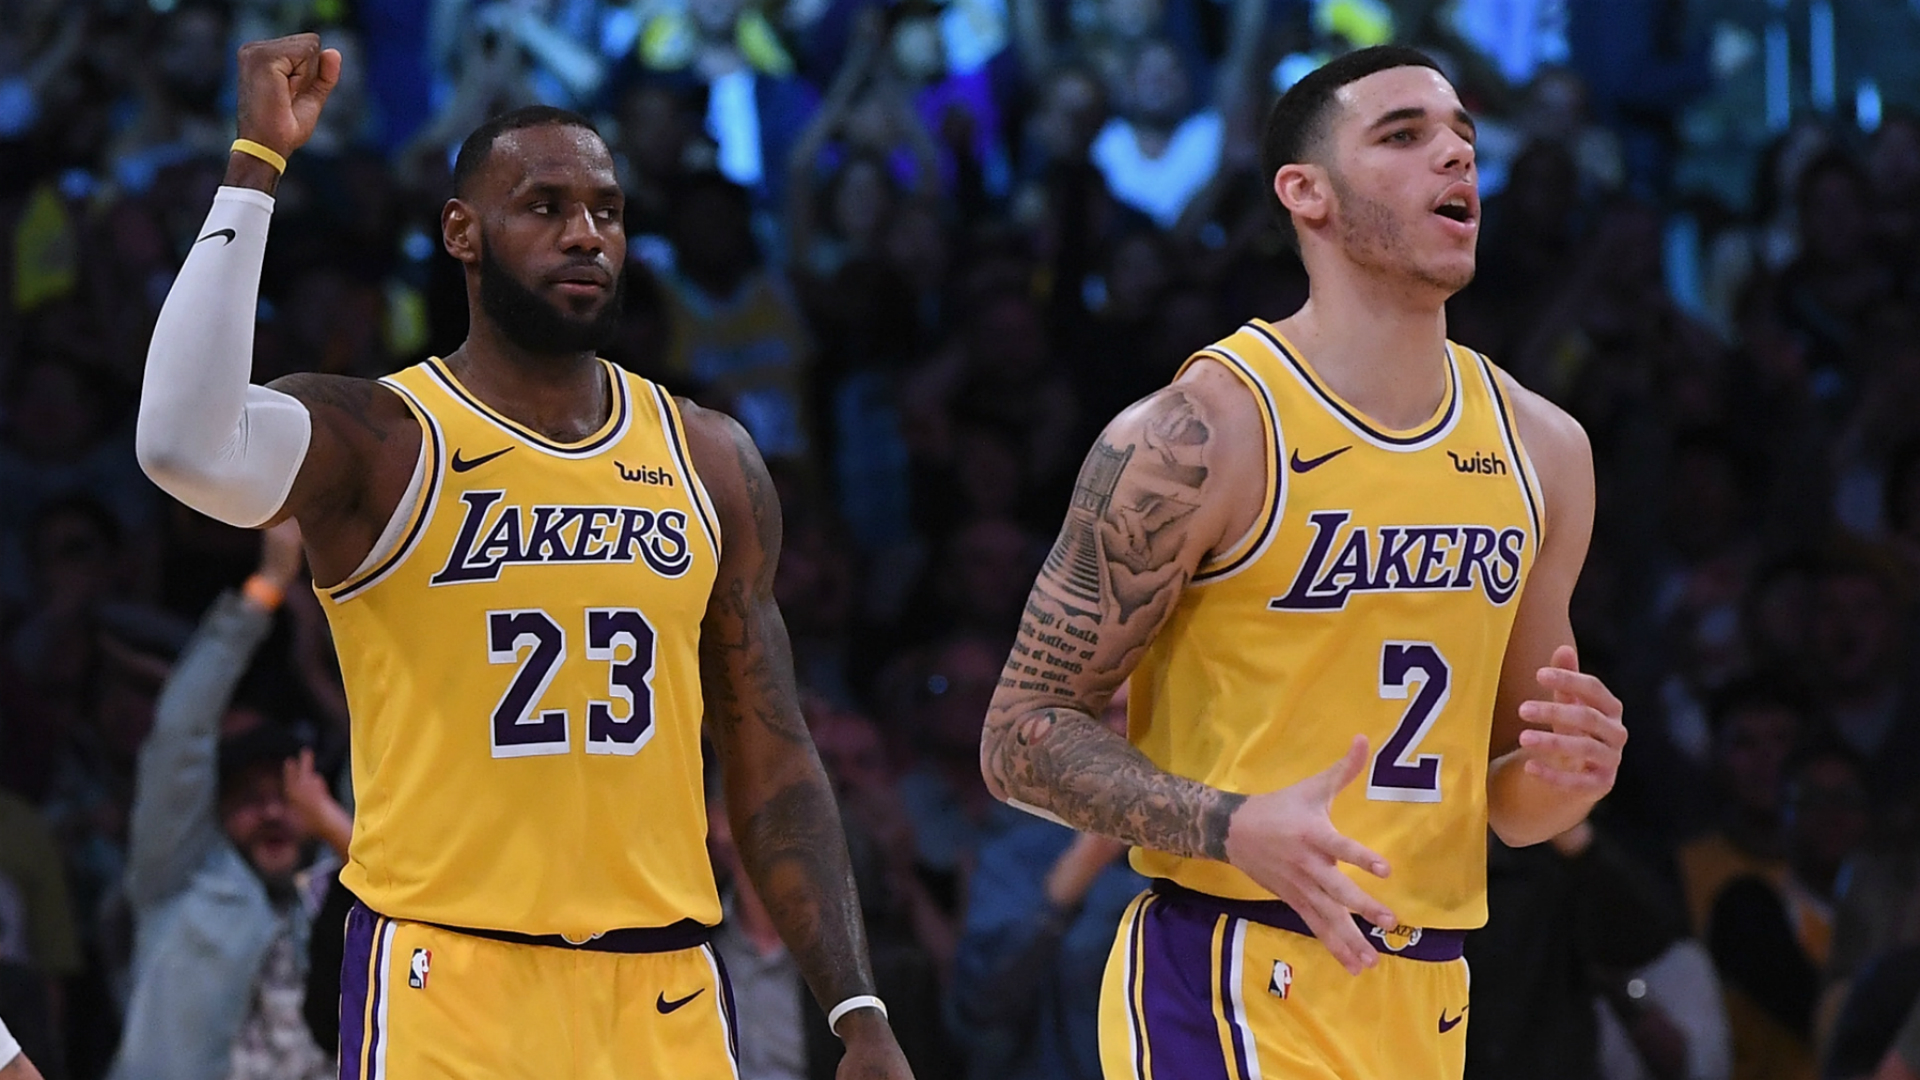 LeBron James and Los Angeles Lakers team-mate Lonzo Ball